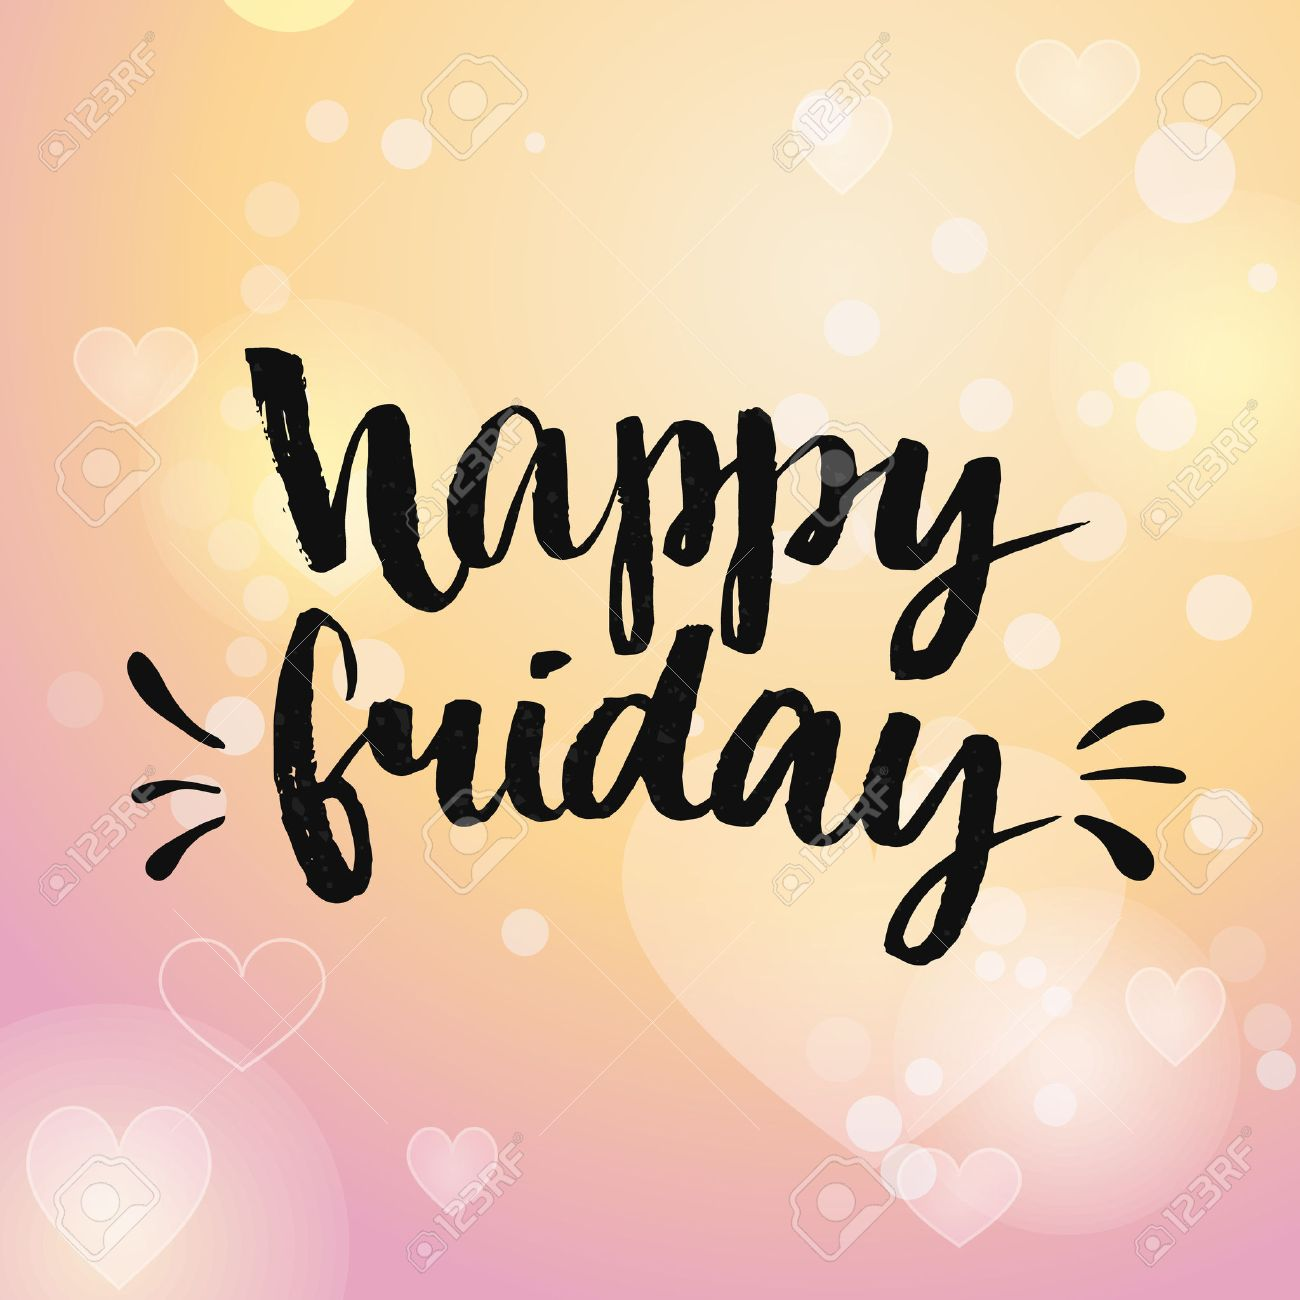 Happy friday positive quote handwritten with brush calligraphy happy friday positive quote handwritten with brush calligraphy vector typography design for cards voltagebd Images